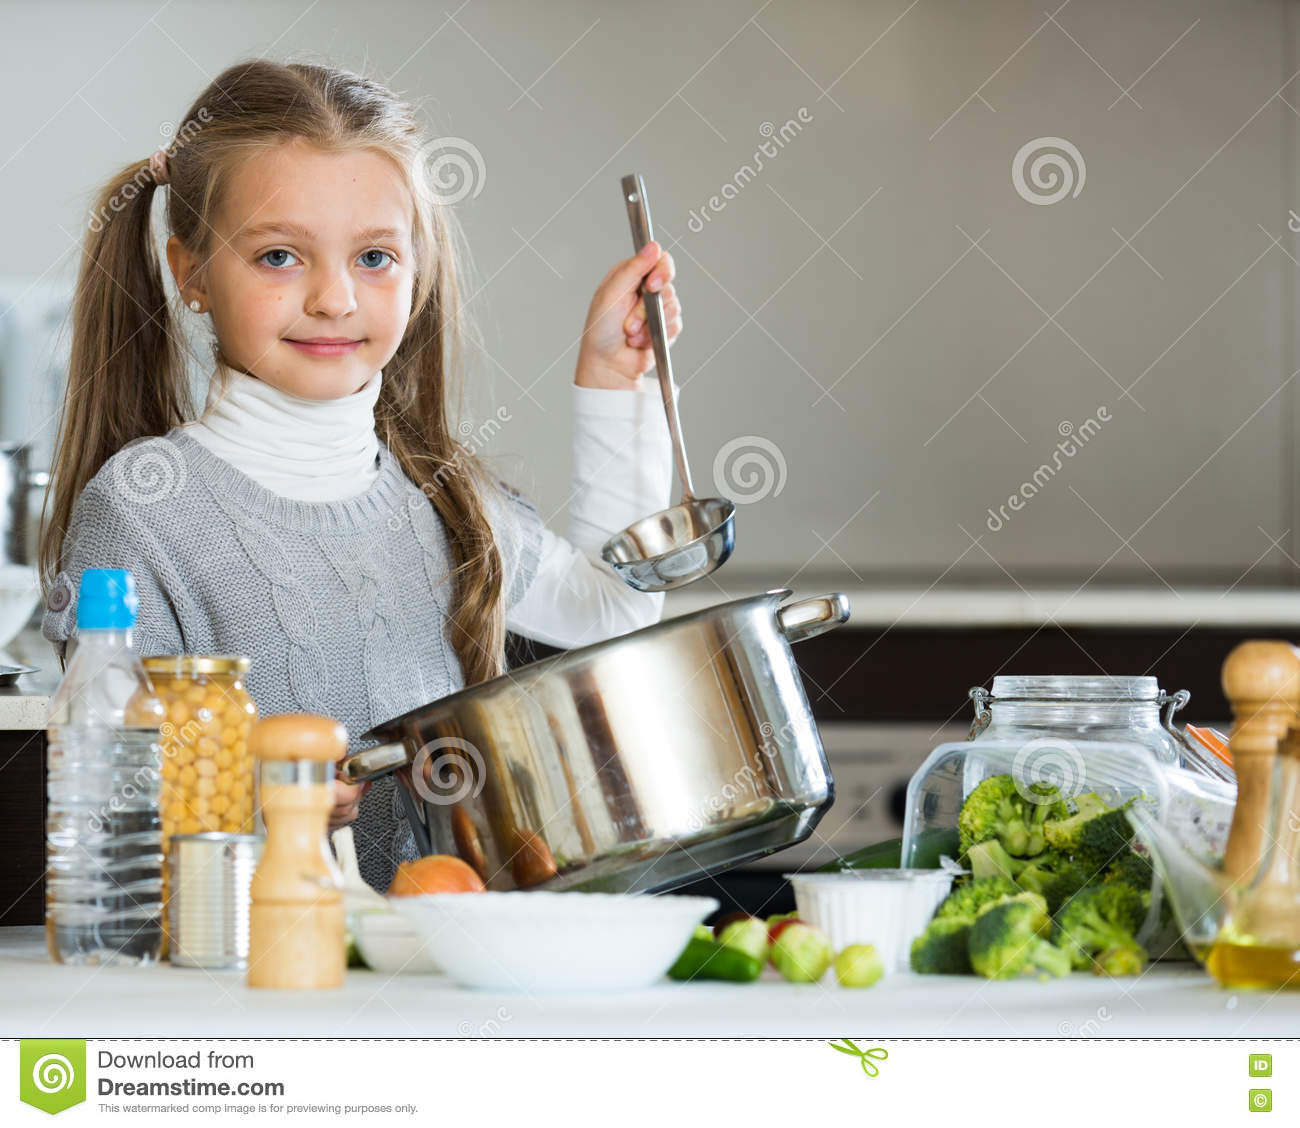 Cute Little Girl Cooking Veggies In Kitchen Royalty-Free